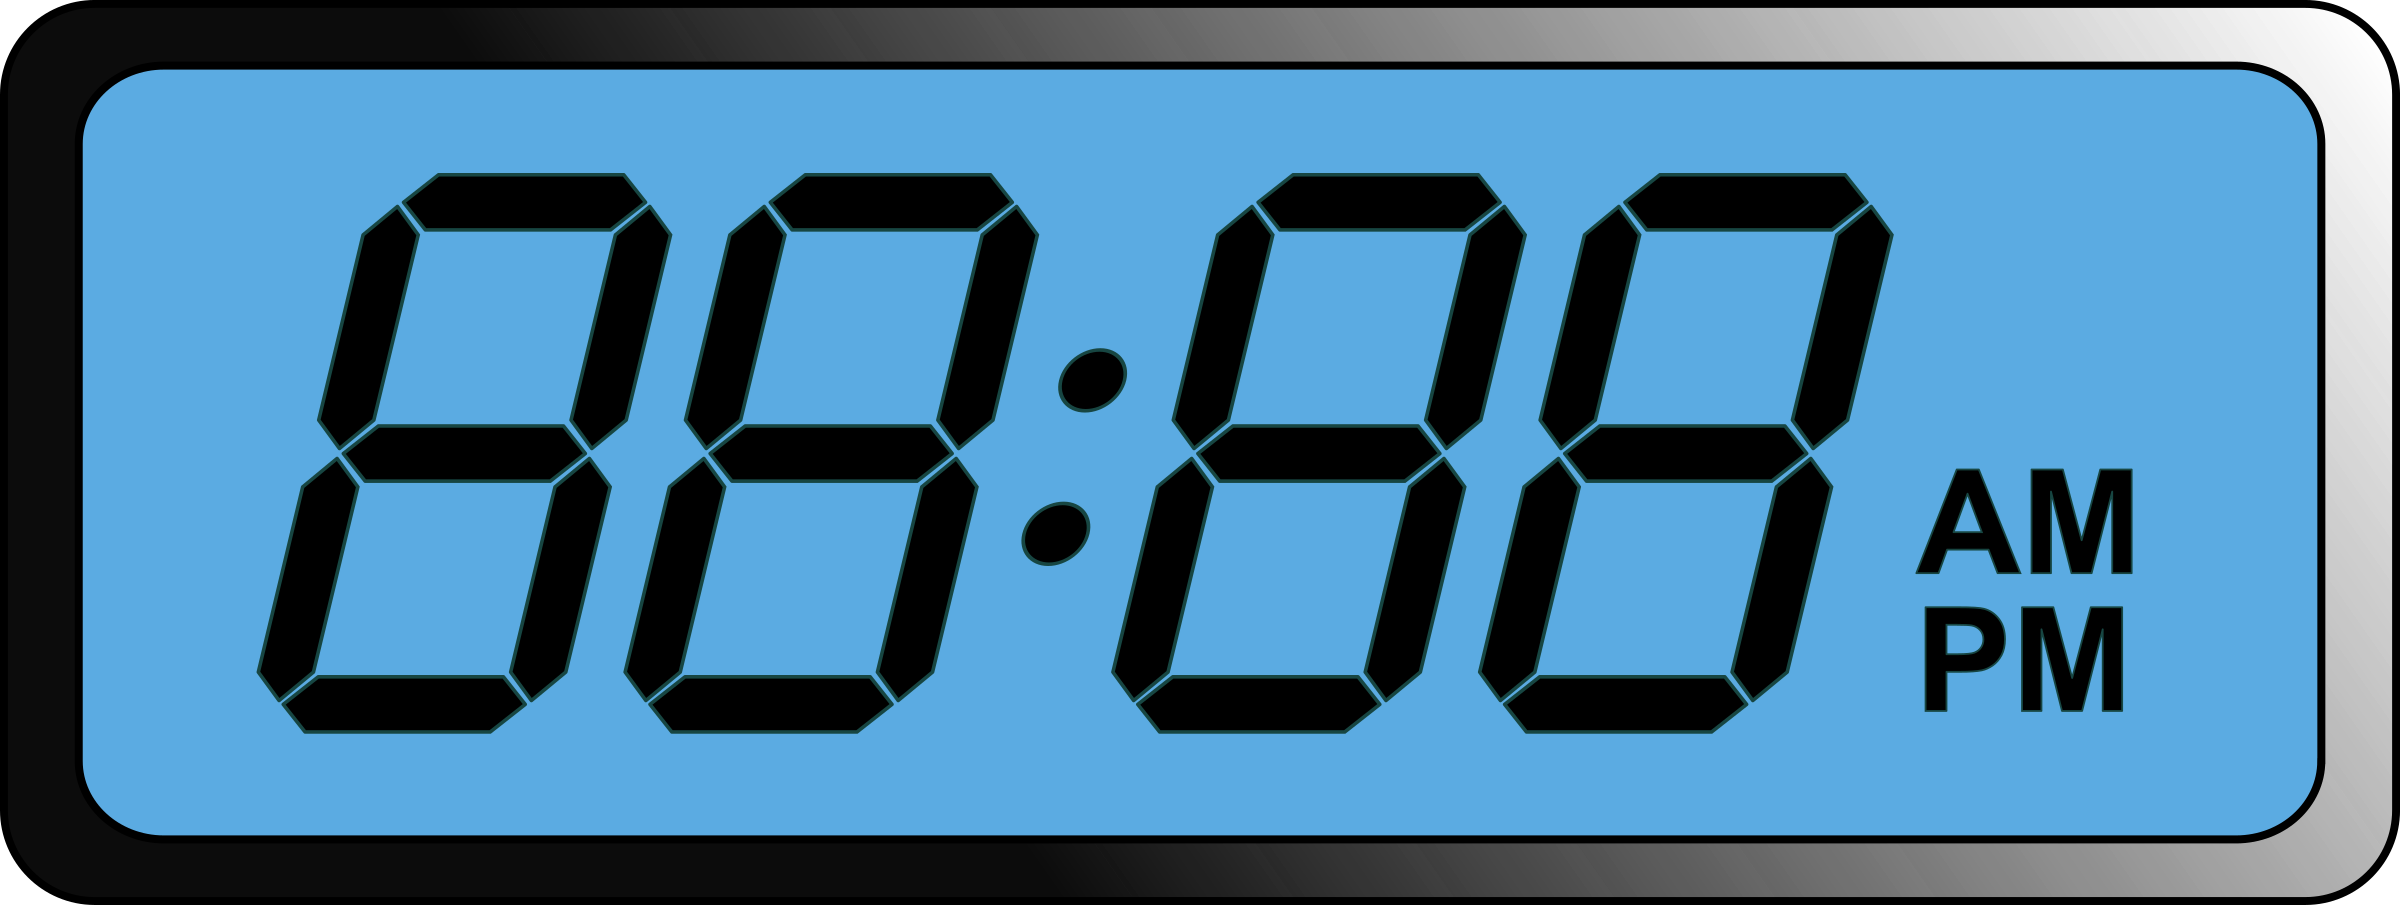 Download Digital Clock File HQ PNG Image in different resolution